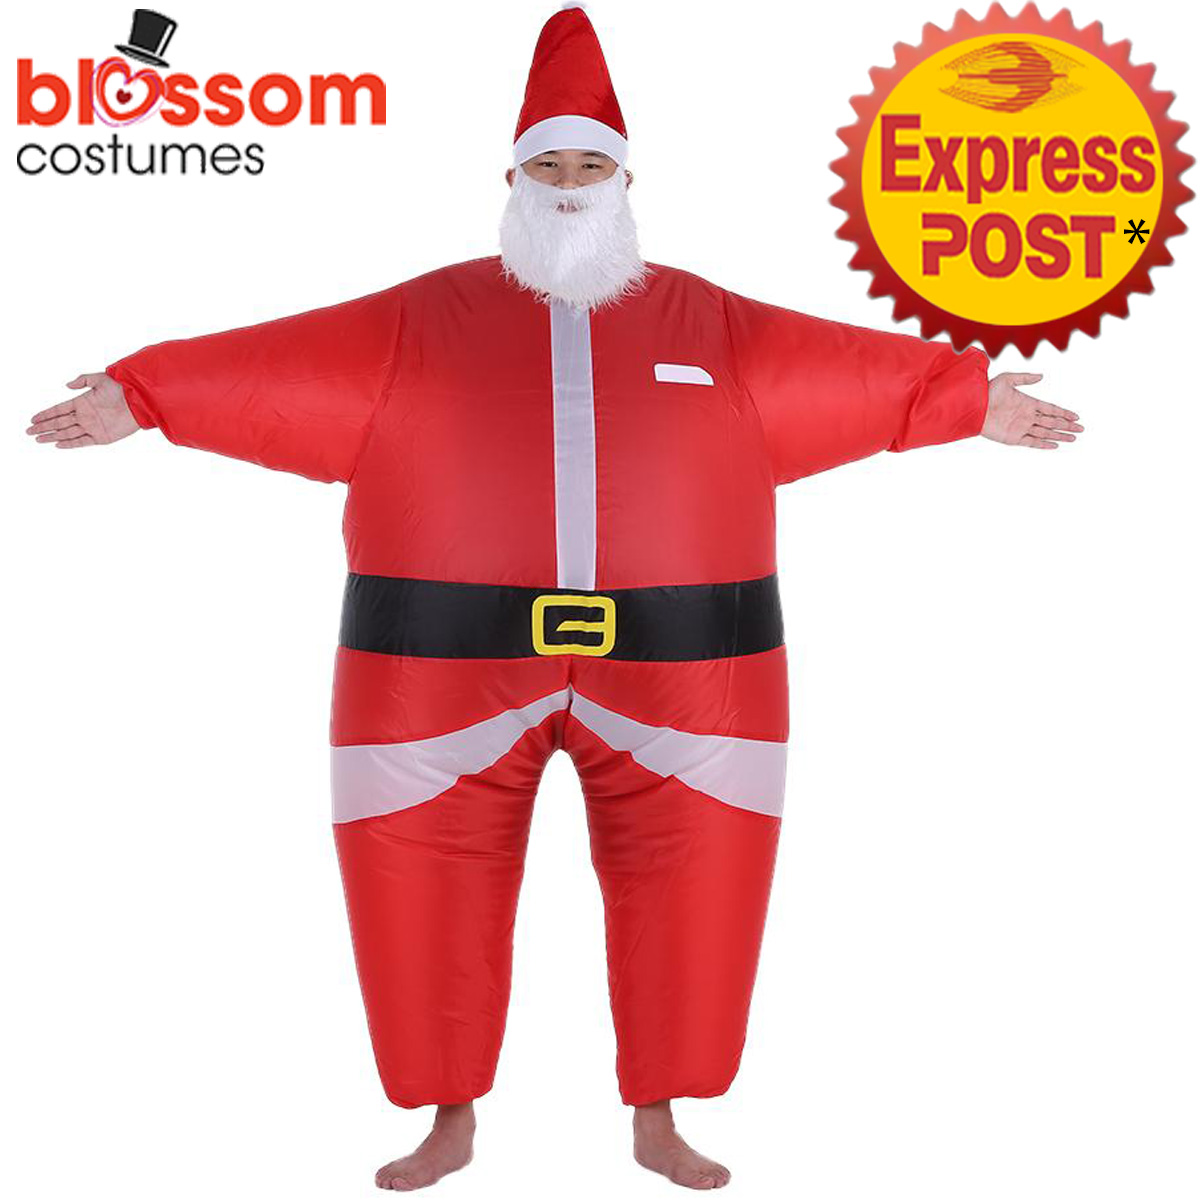 K354-Inflatable-Santa-Claus-Costume-Suit-Funny-Christmas-Xmas-Fancy-Dress-Outfit